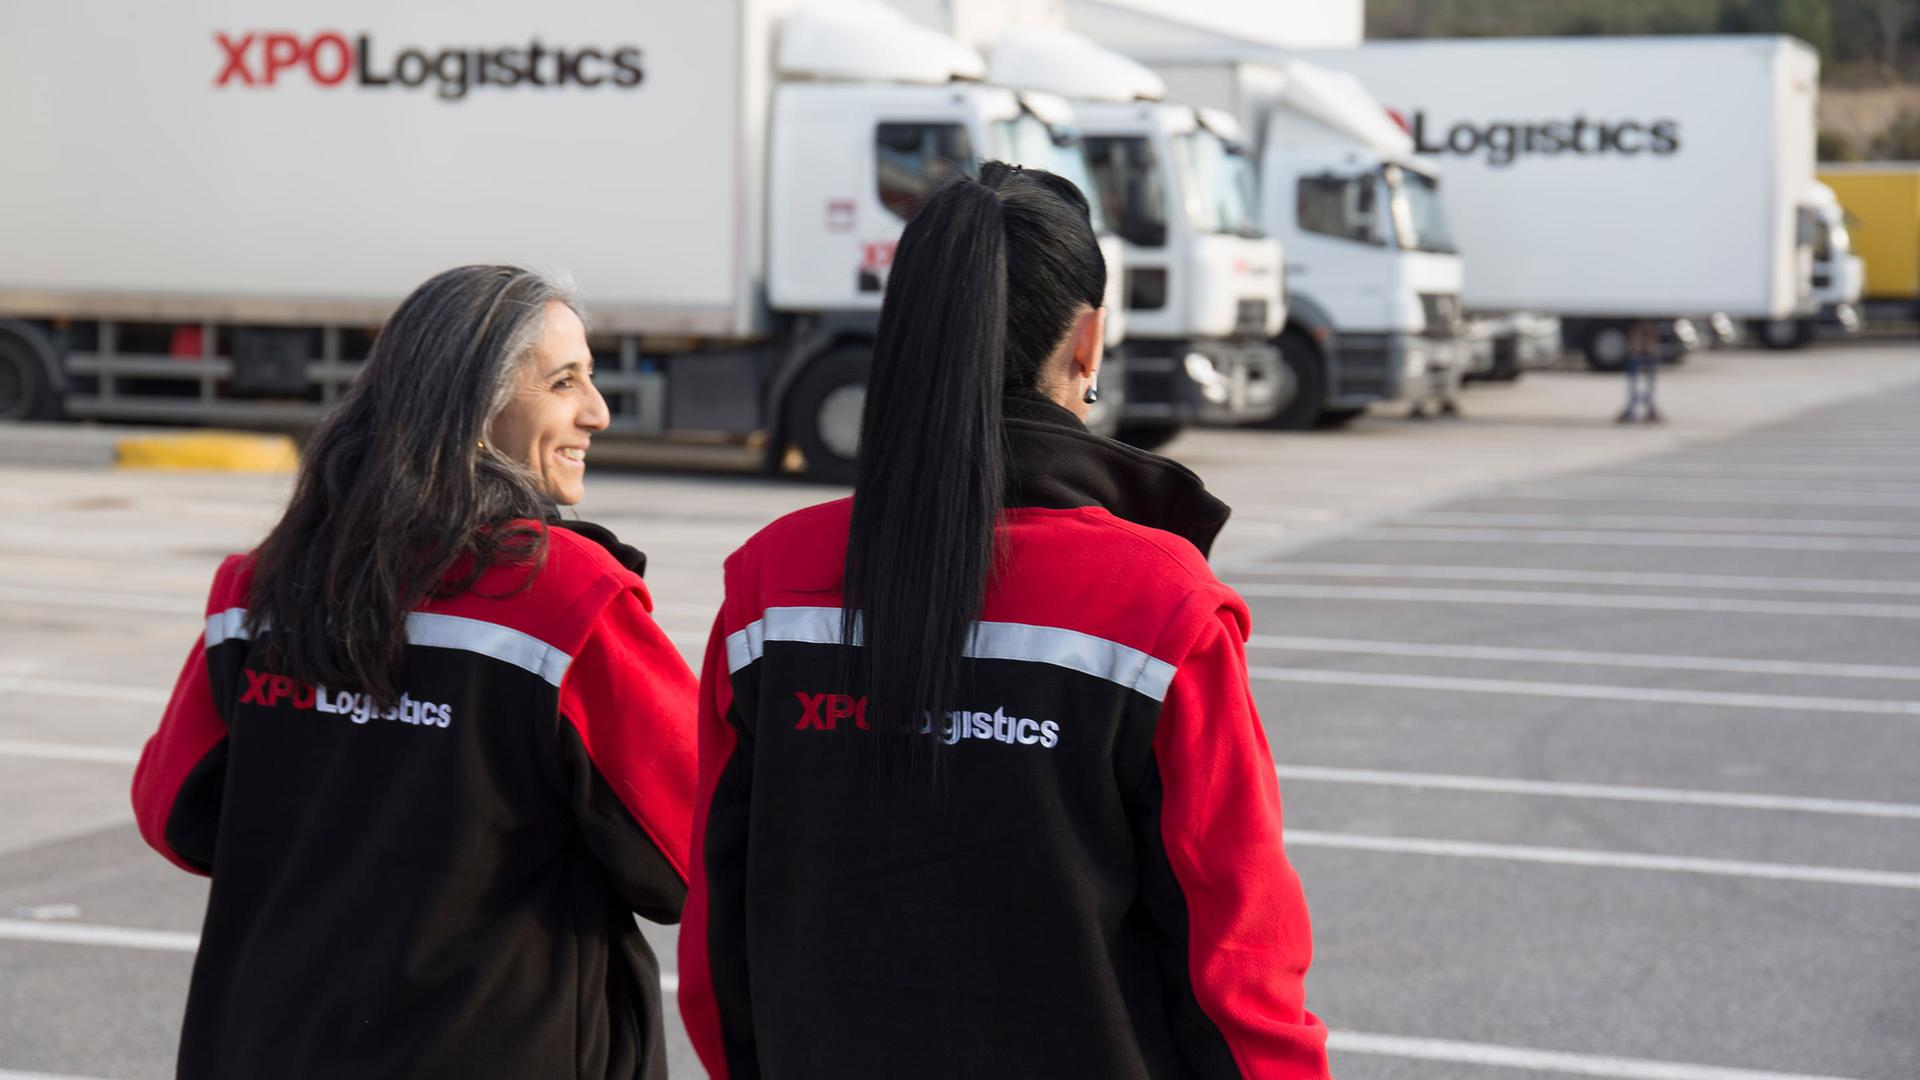 xpo-logistics-the-largest-company-in-the-most-competitive-industry-logistics